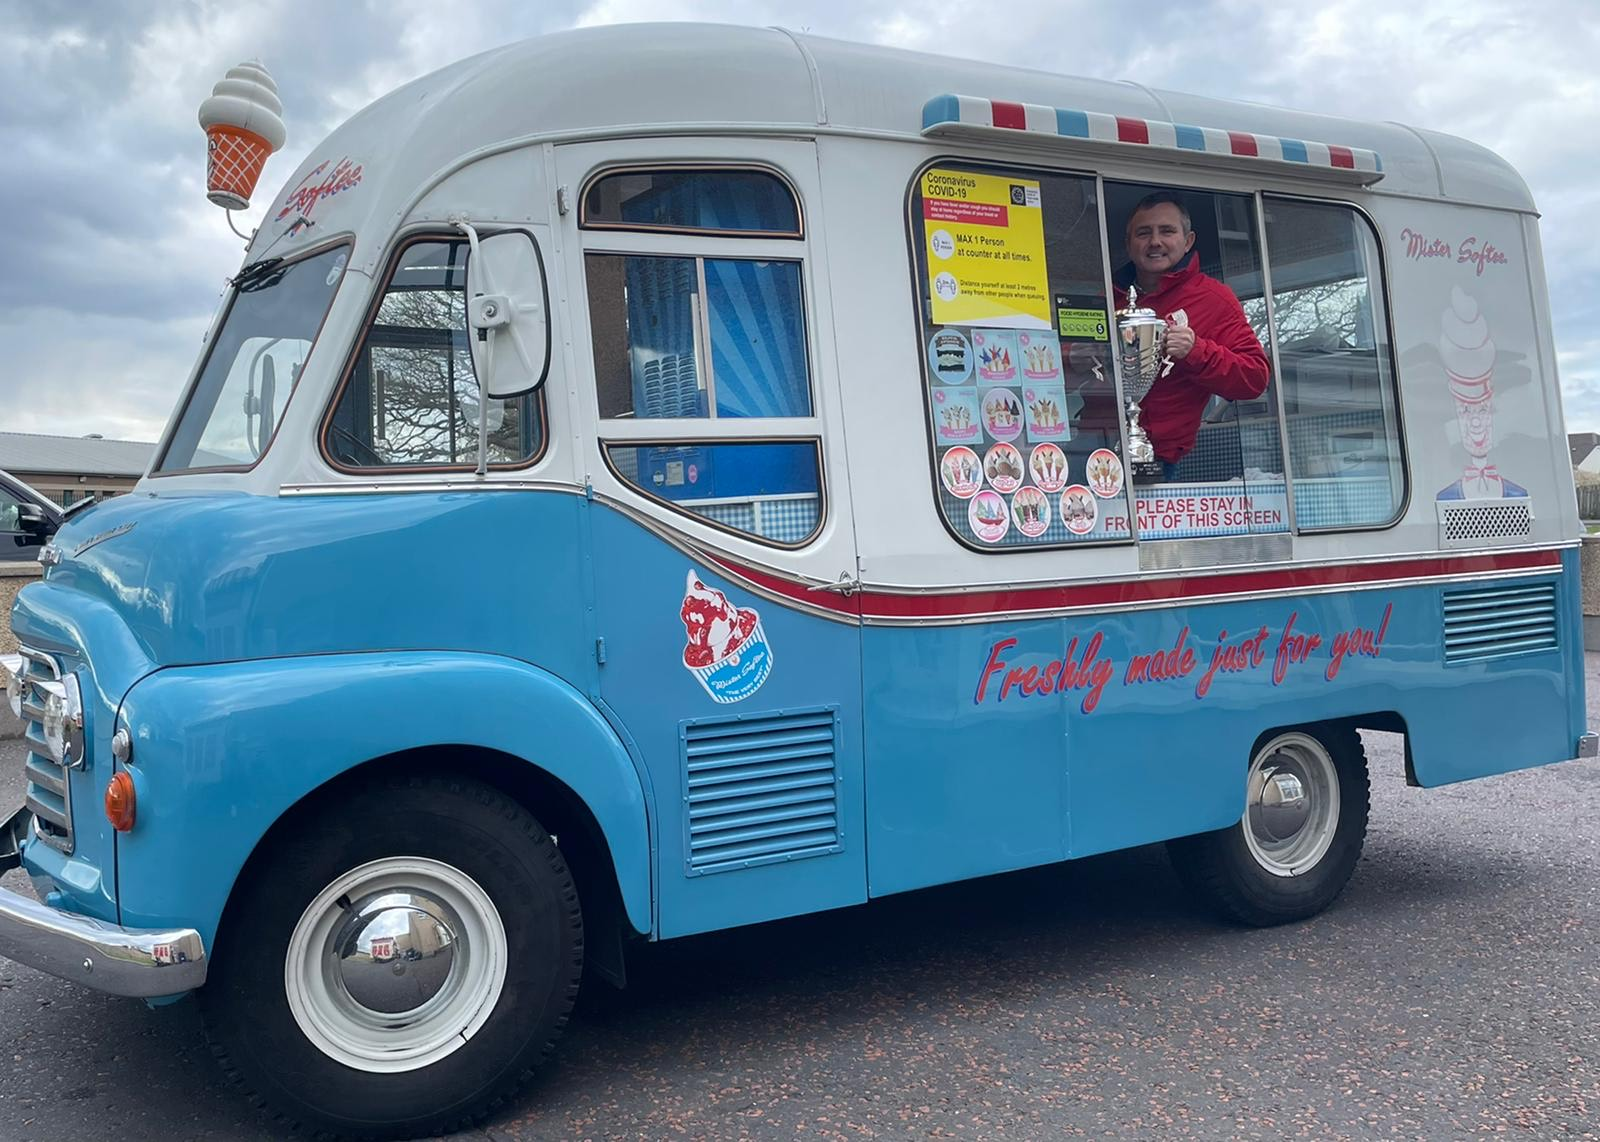 Ice cream van man Jimmy scoops historic win